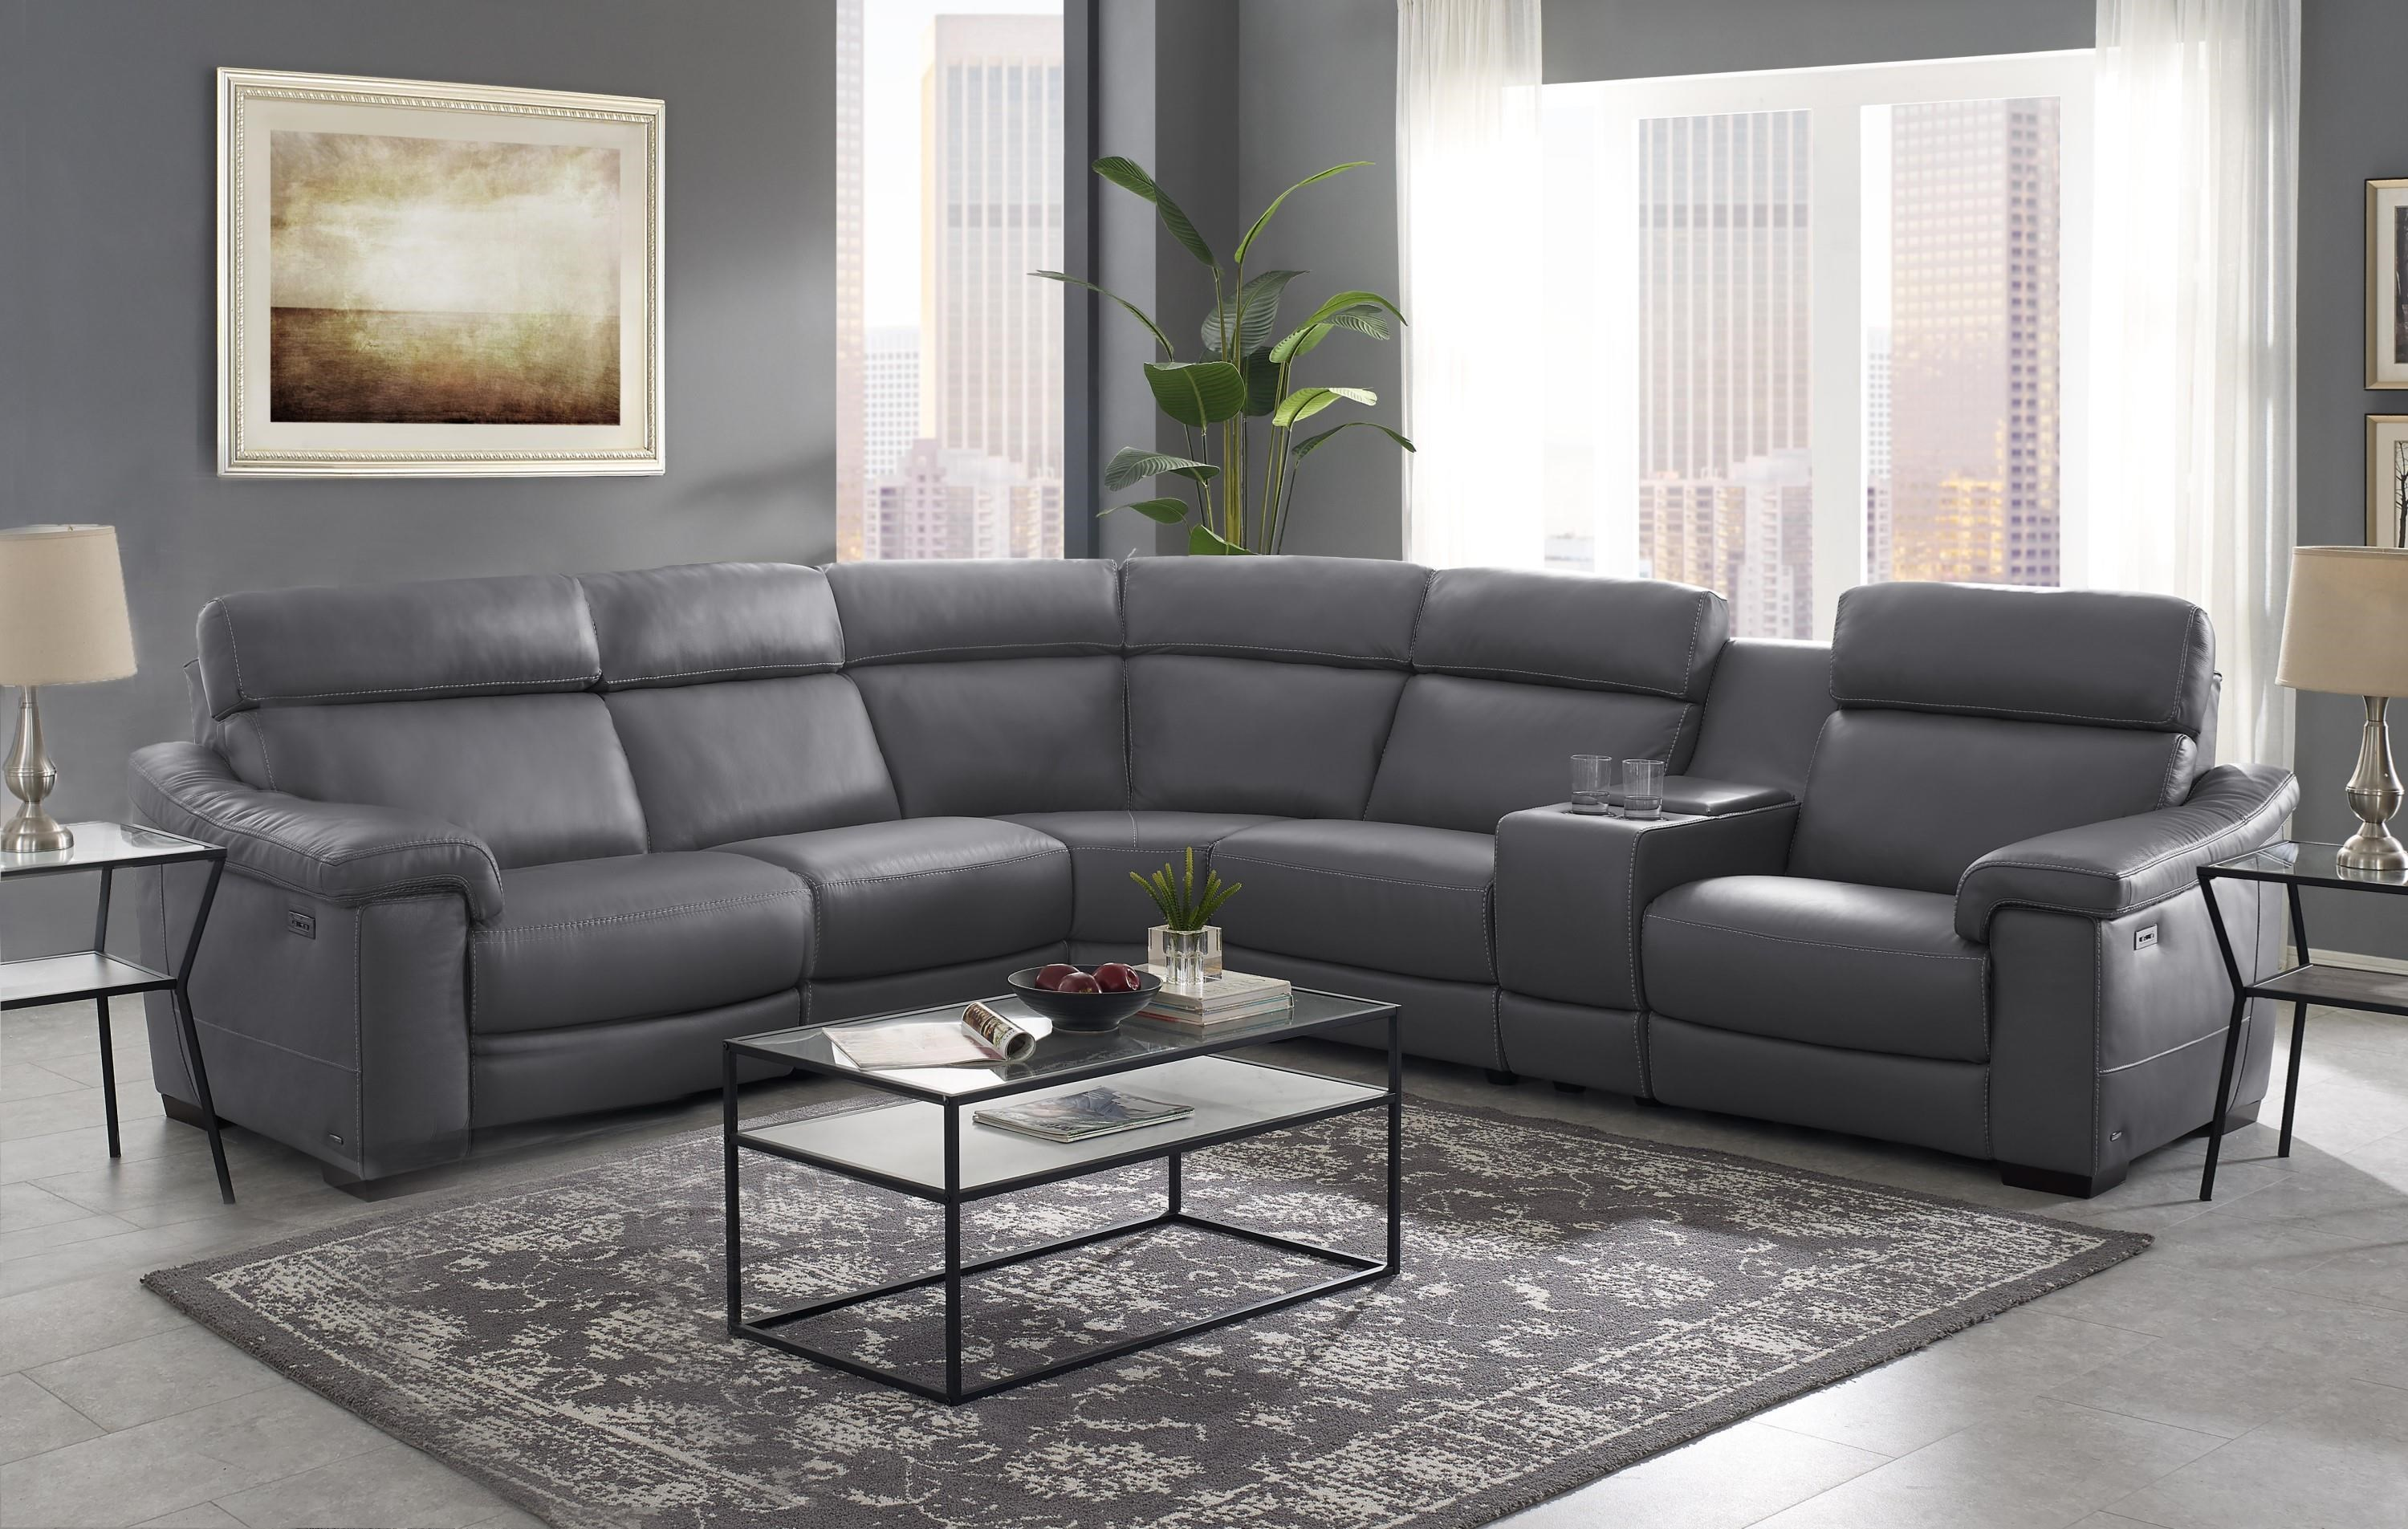 Giulivo Power Reclining Sectional Sofa by Natuzzi Editions at Baer's Furniture